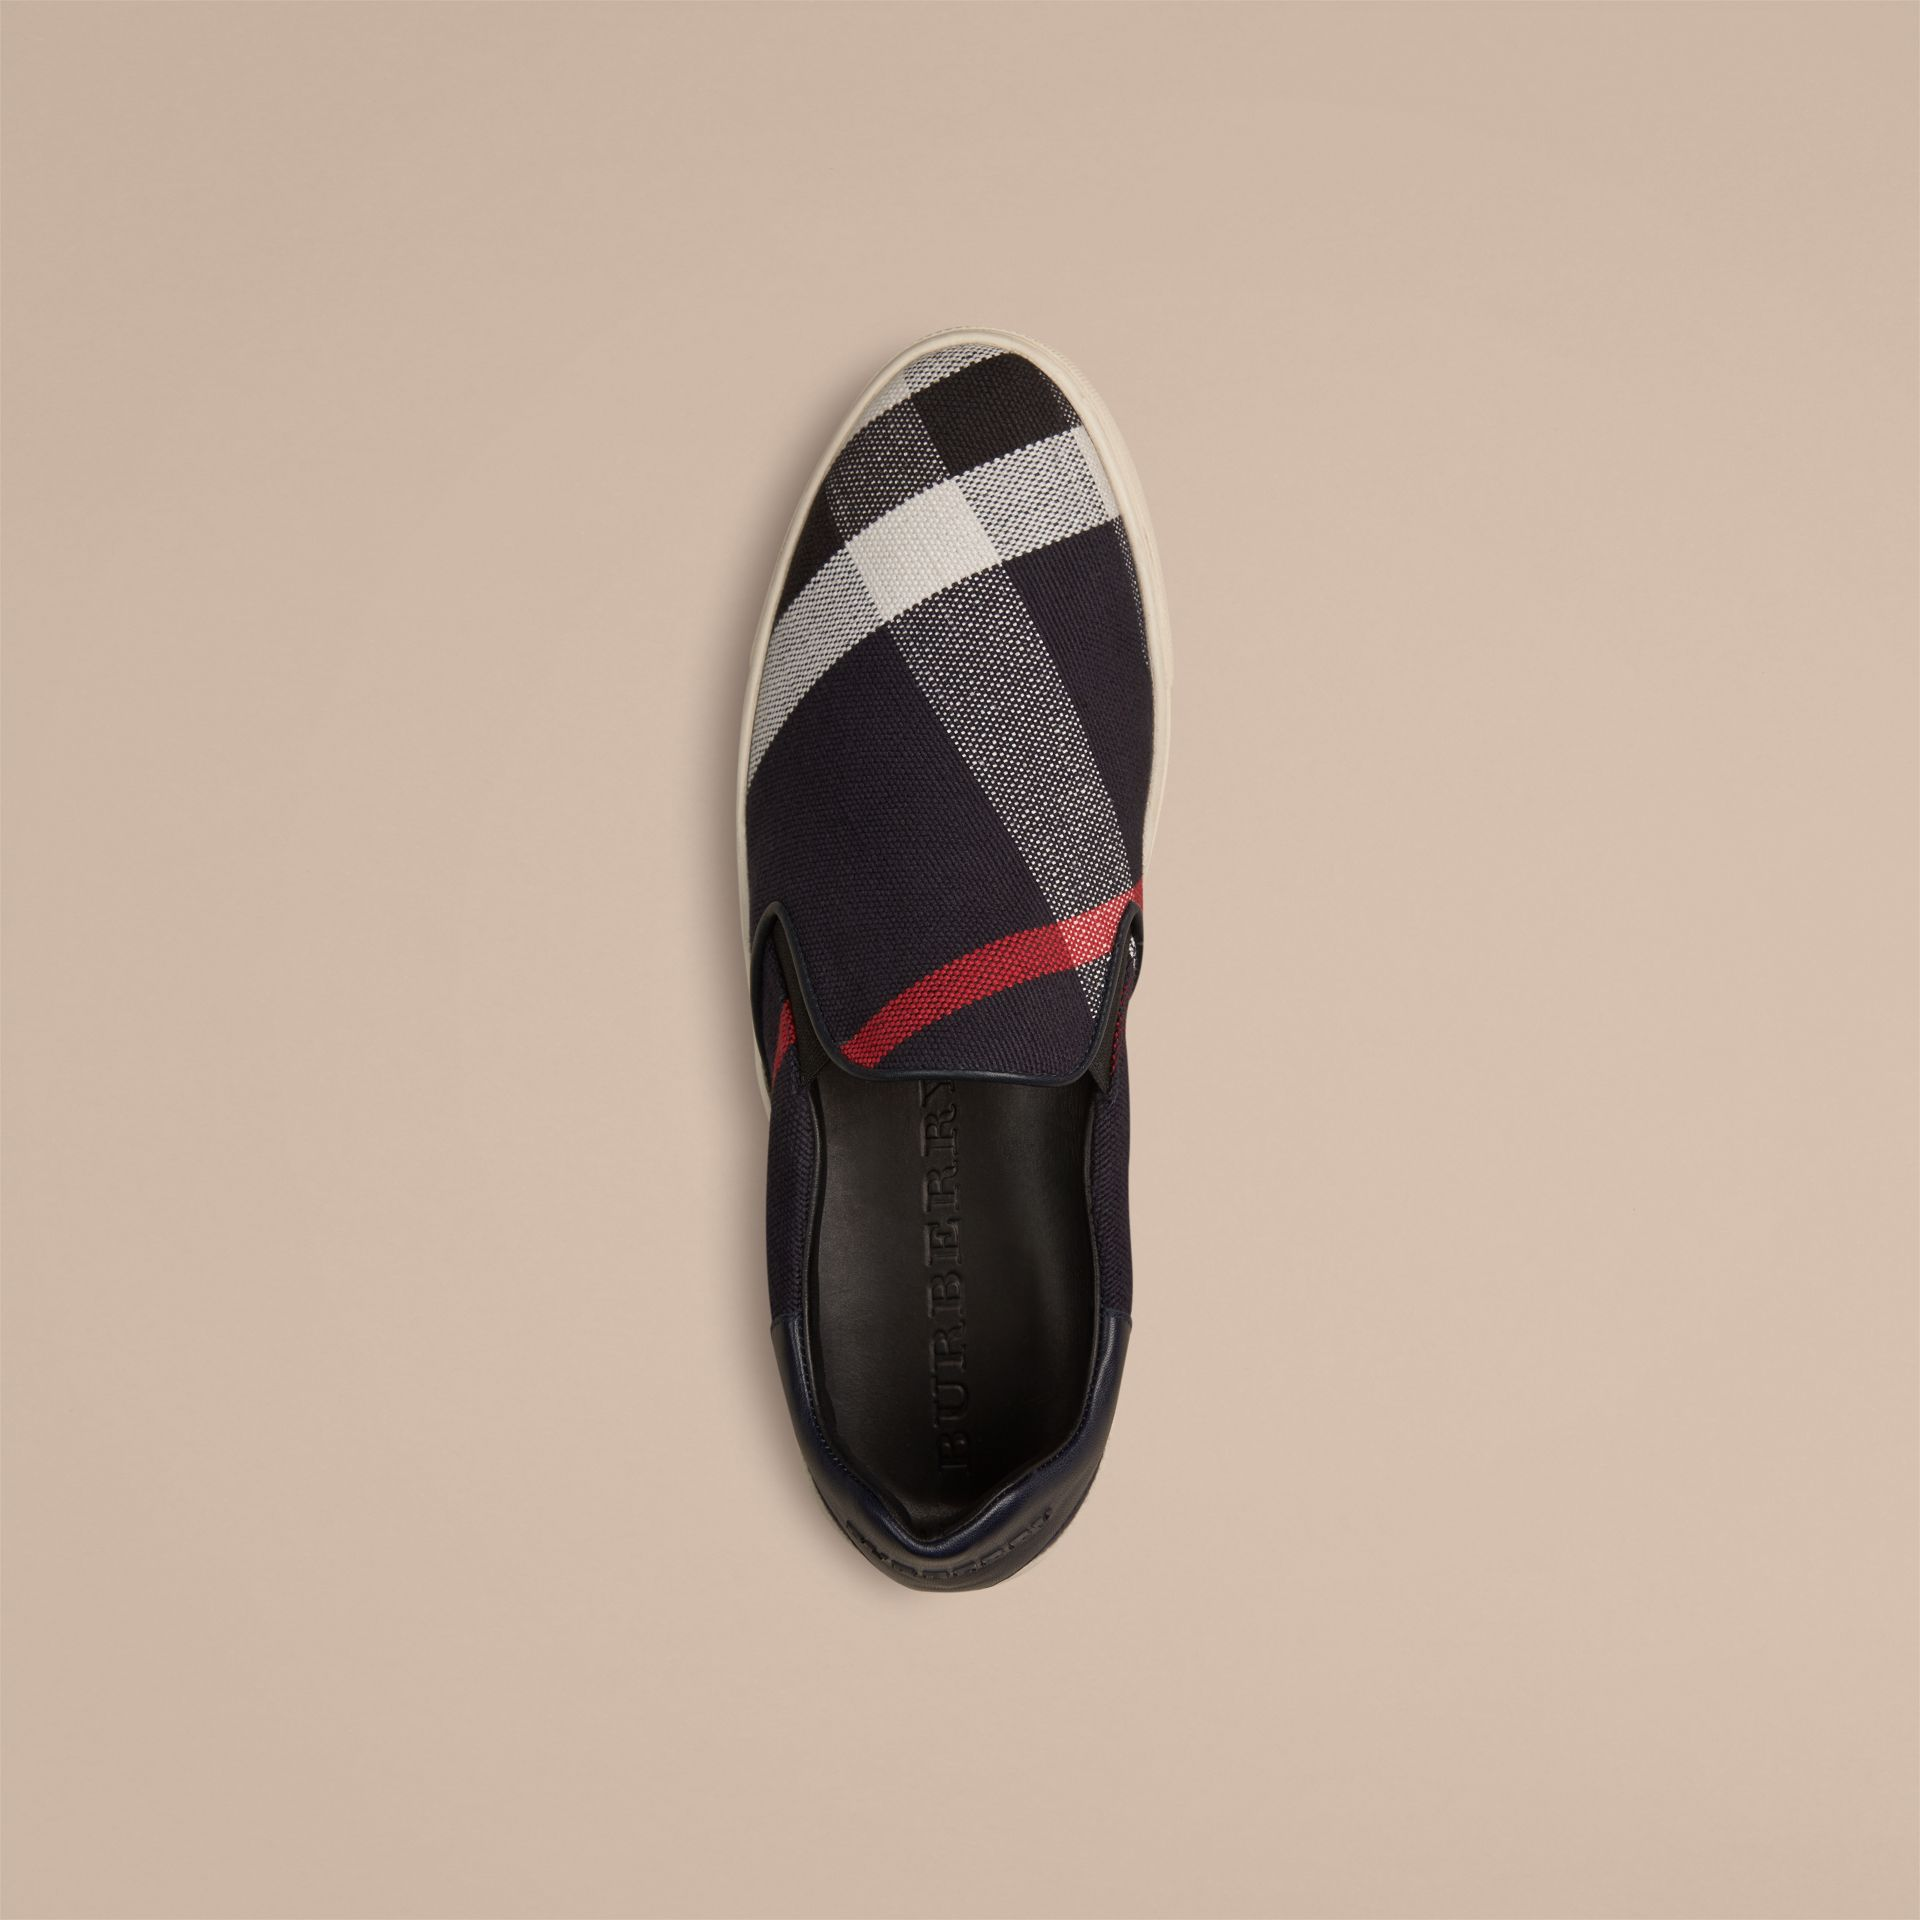 Ultramarinblau Sport-Slipper in Canvas Check und Leder - Galerie-Bild 2